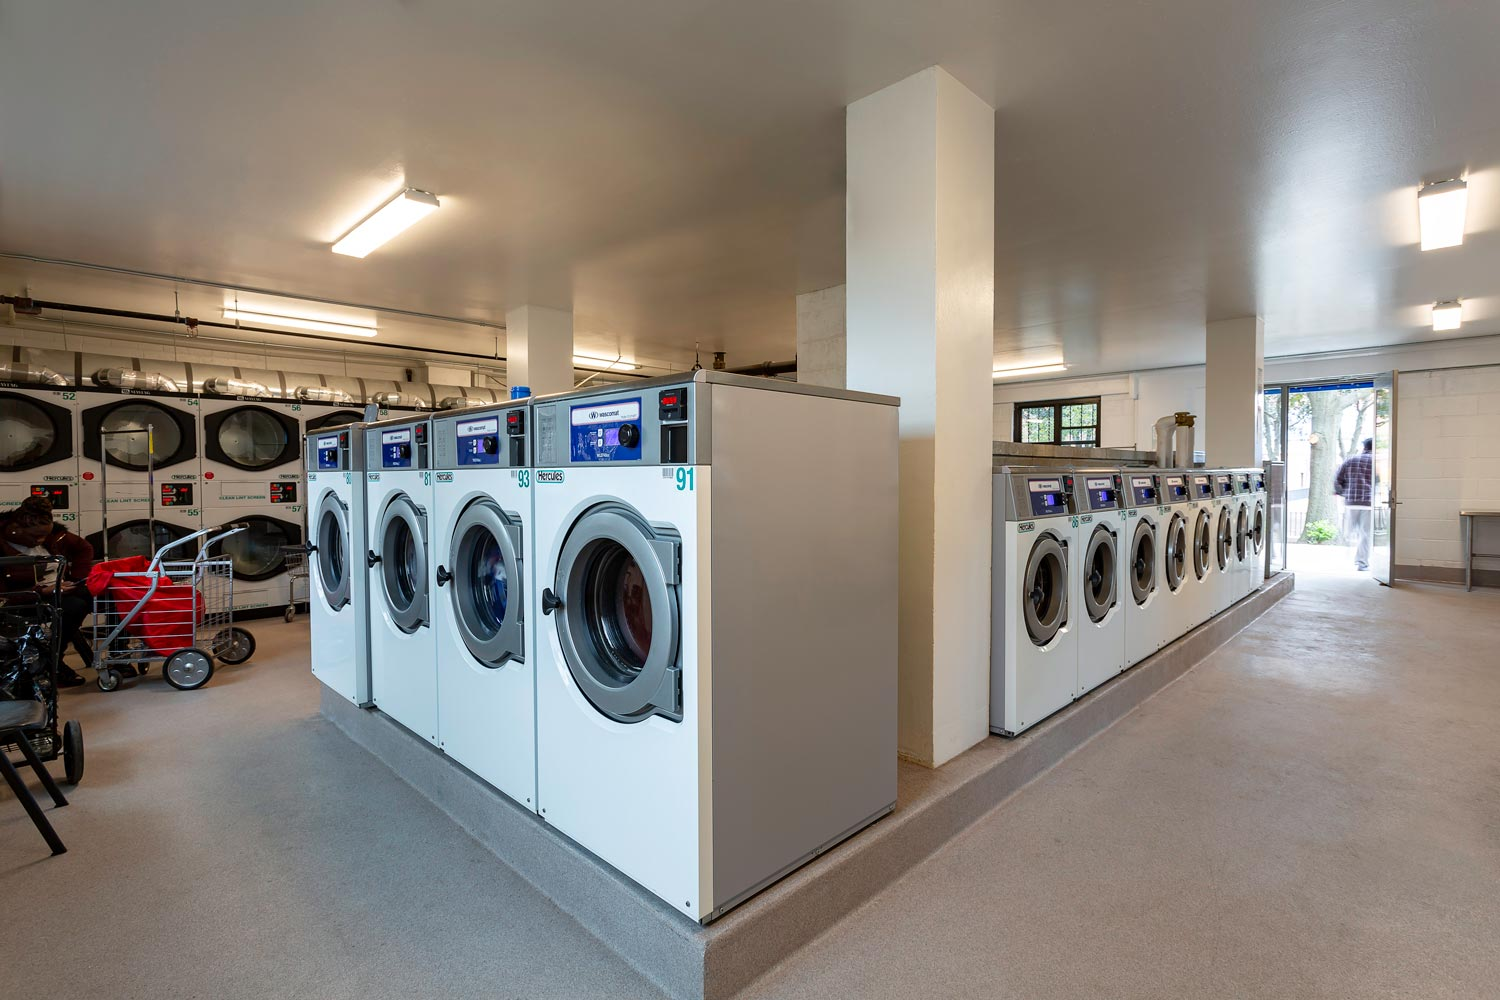 New high efficiency washing machines and dryers in laundry rooms.